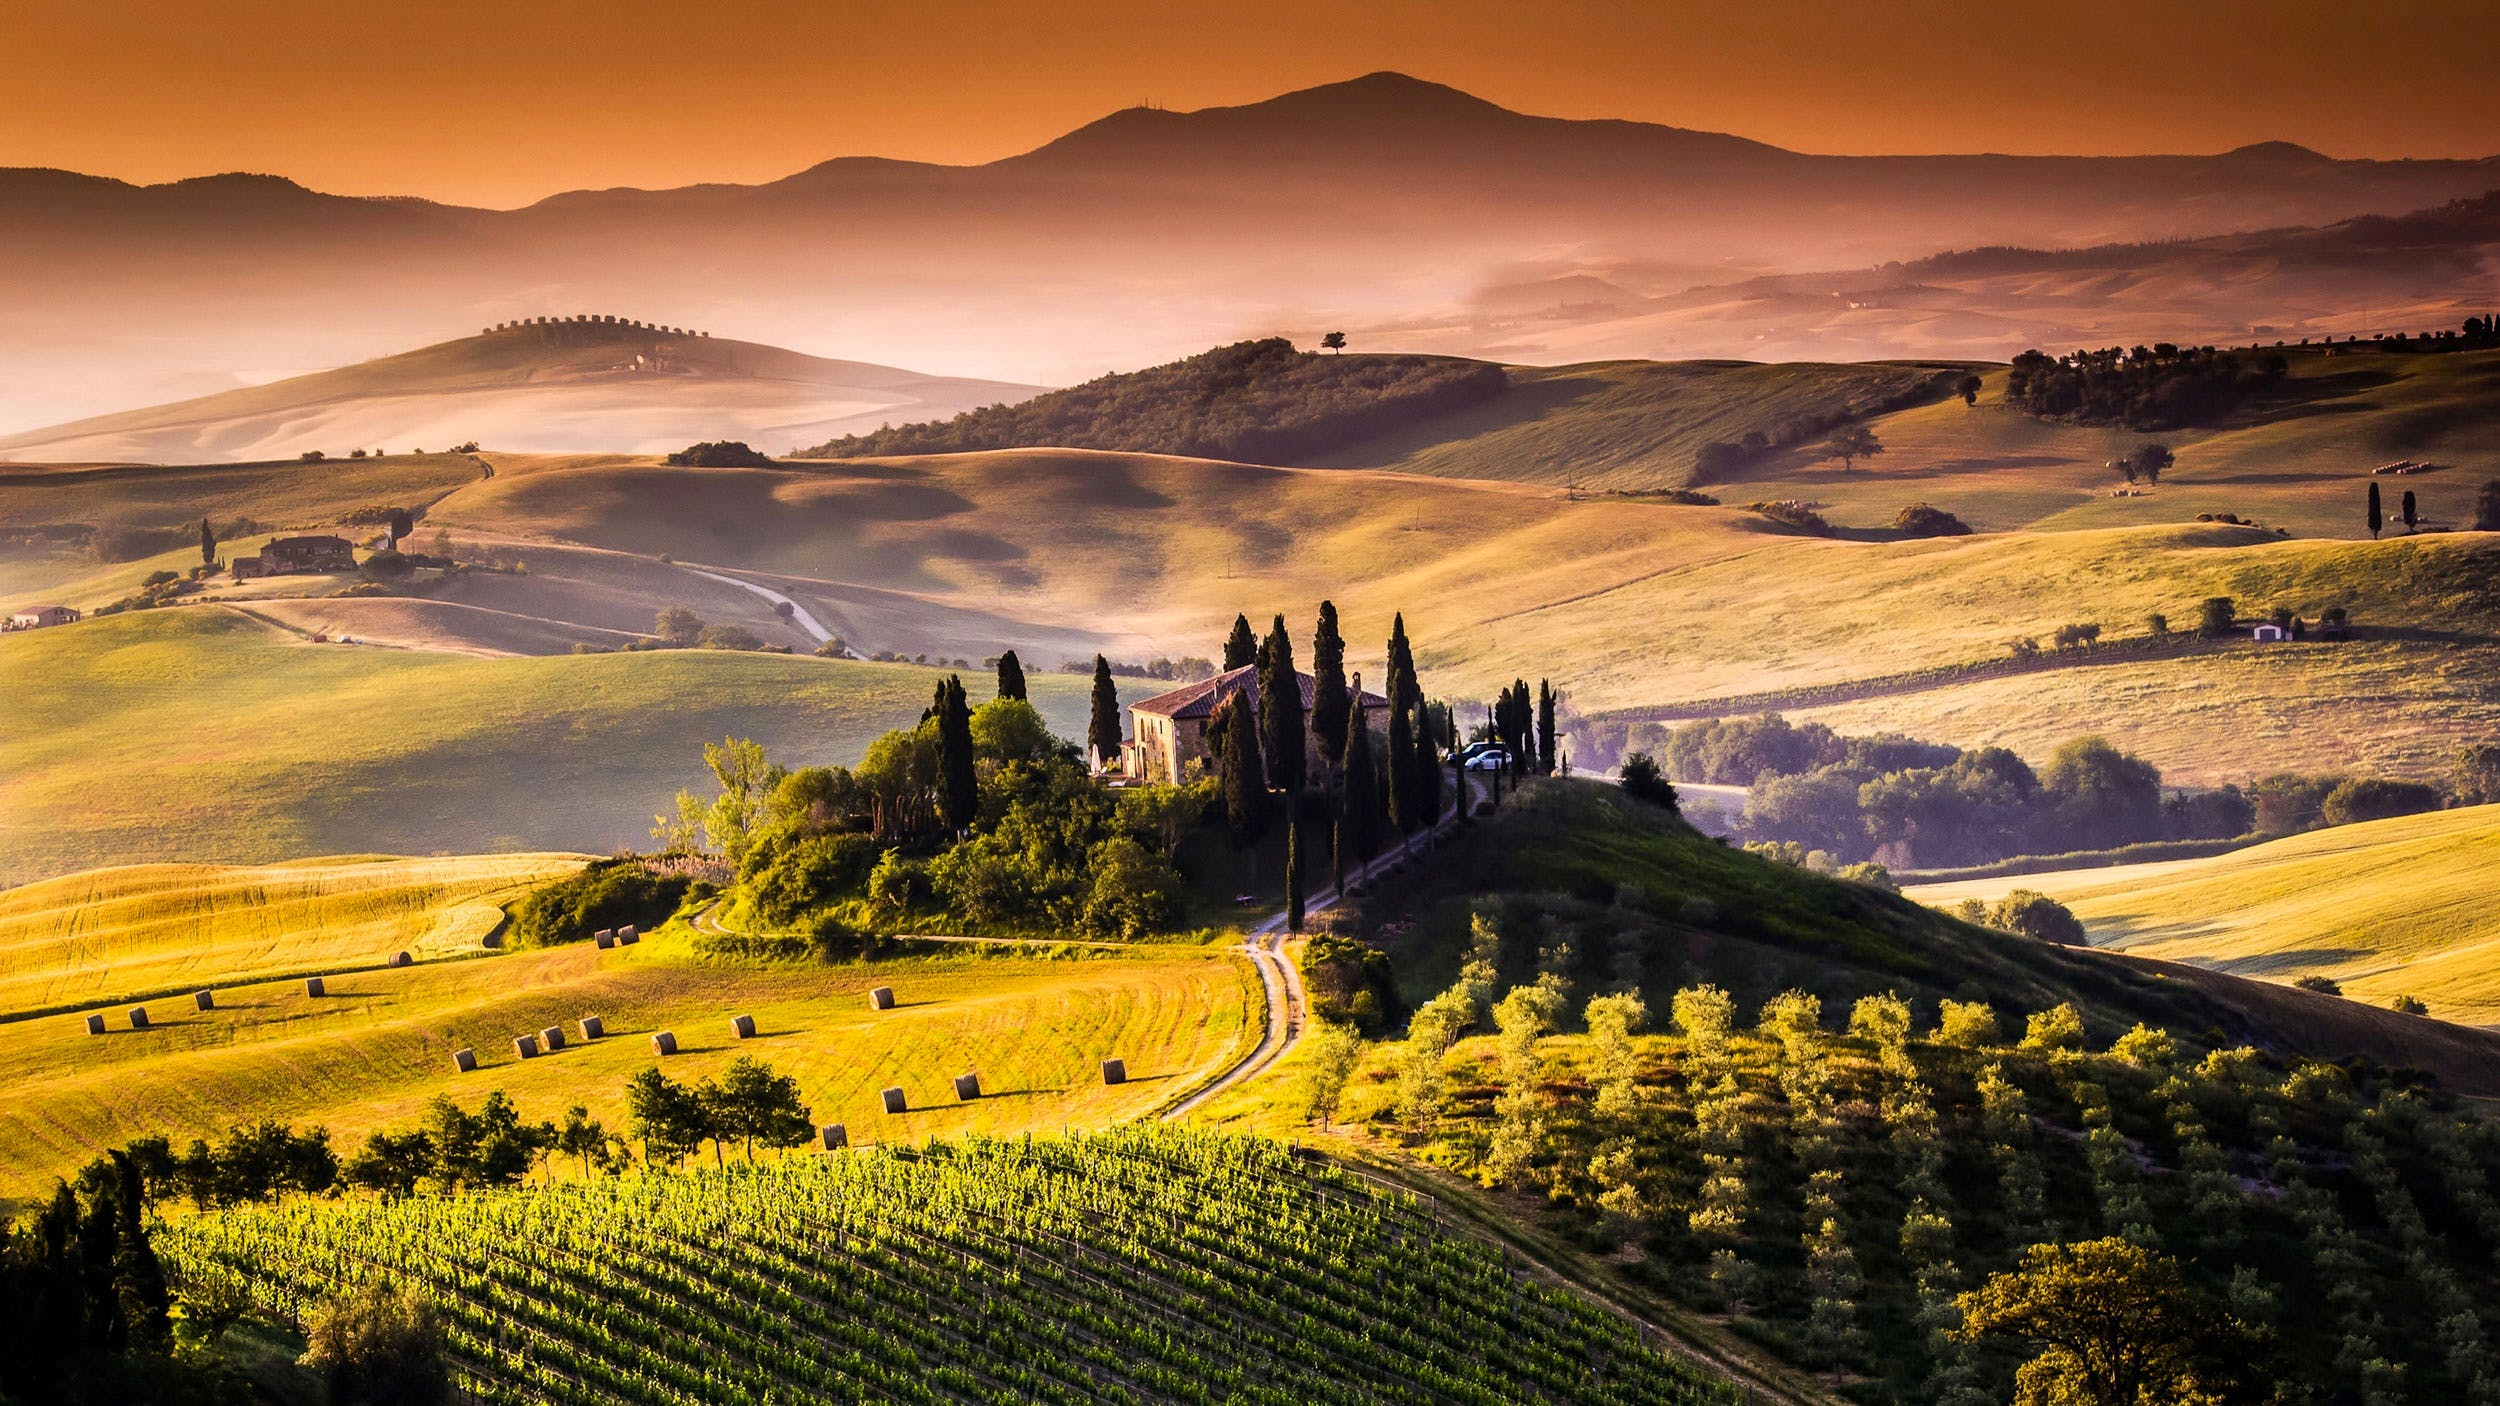 TuscanyItaly Tourist Travel Guide To Holidays In Tuscany - Tranquil photos capture the beauty of tuscanys countryside